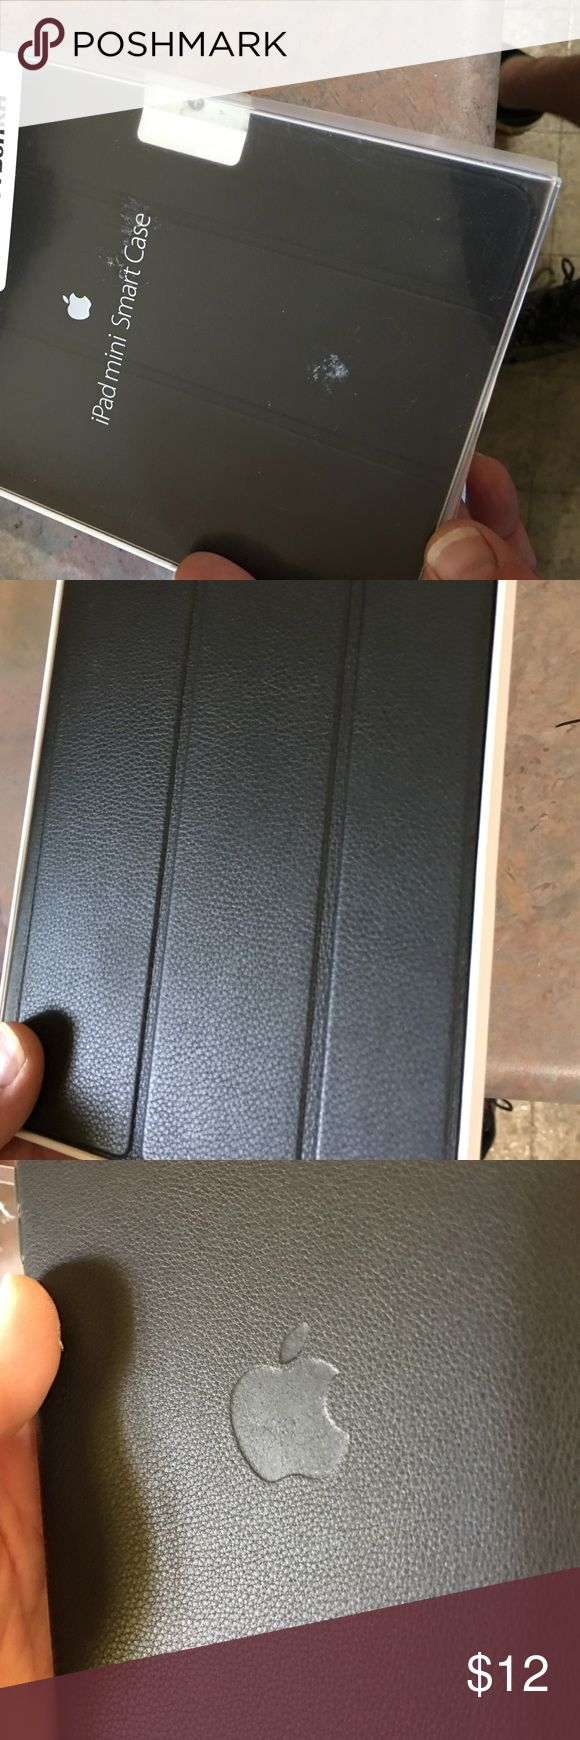 I Pad mini Smart Case New I Pad mini Smart Case. This is a Customer return that shows little to no wear. I will ship it next day. Thanks. Apple Accessories Laptop Cases